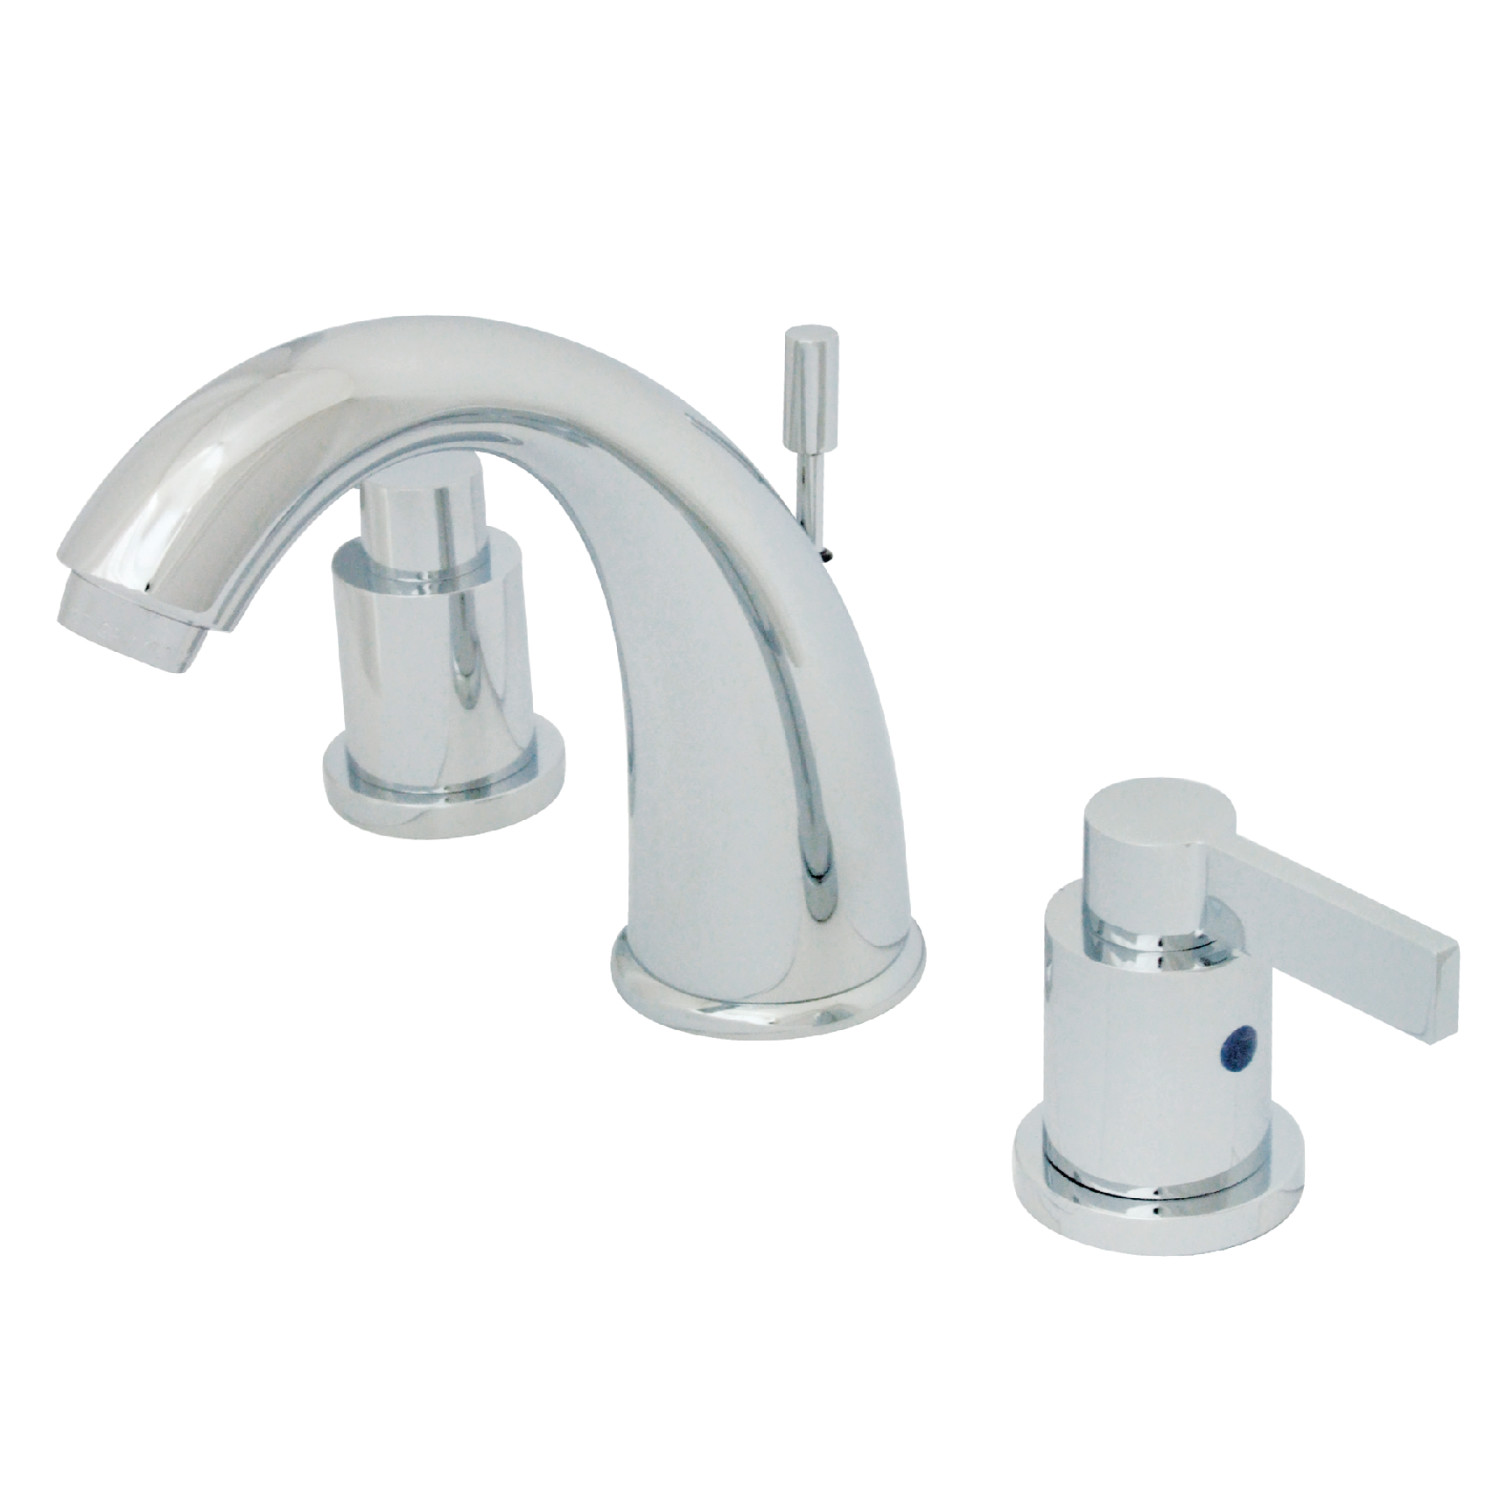 Modern 2 Handle 3-Hole Deck Mounted Widespread Bathroom Faucet with Plastic Pop-Up in Polished Chrome